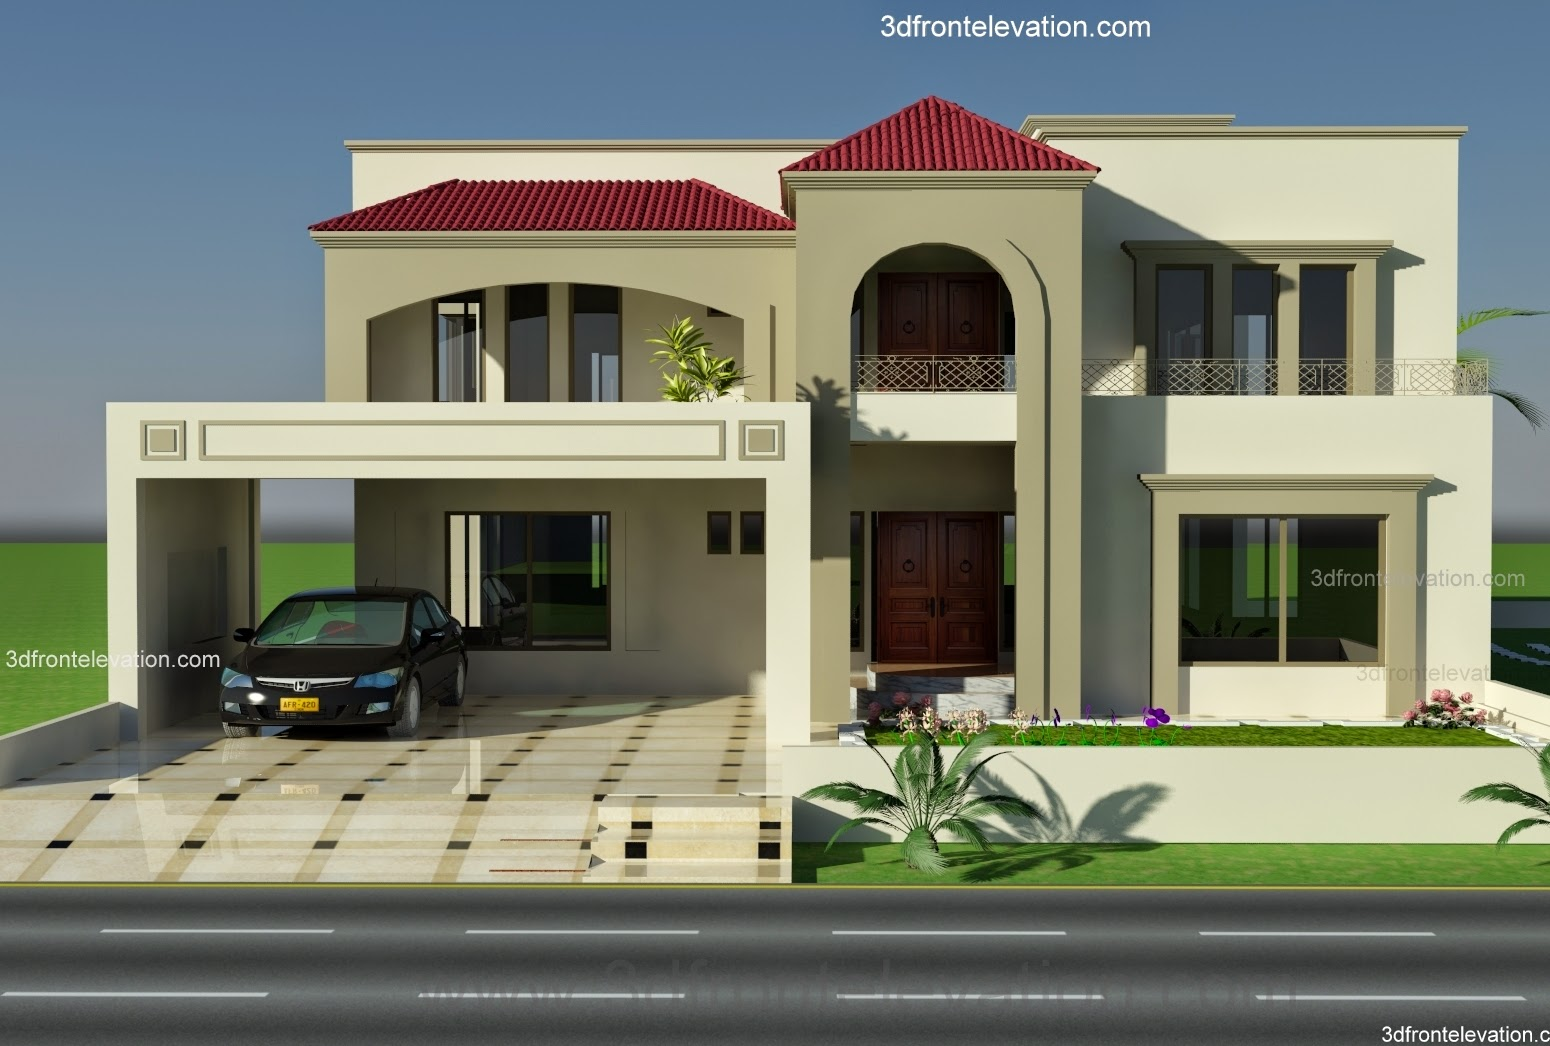 map interior design ideas small house html with 1 Kanal House Plan Bahria Town on Inspiration Gallery additionally Narrowboat Hired Stag Party Capsizes Getting Stuck Lock Near Bath moreover 2012 09 01 archive also Duplex House Plans together with Duplex House Plan And Elevation 2310 Sq.